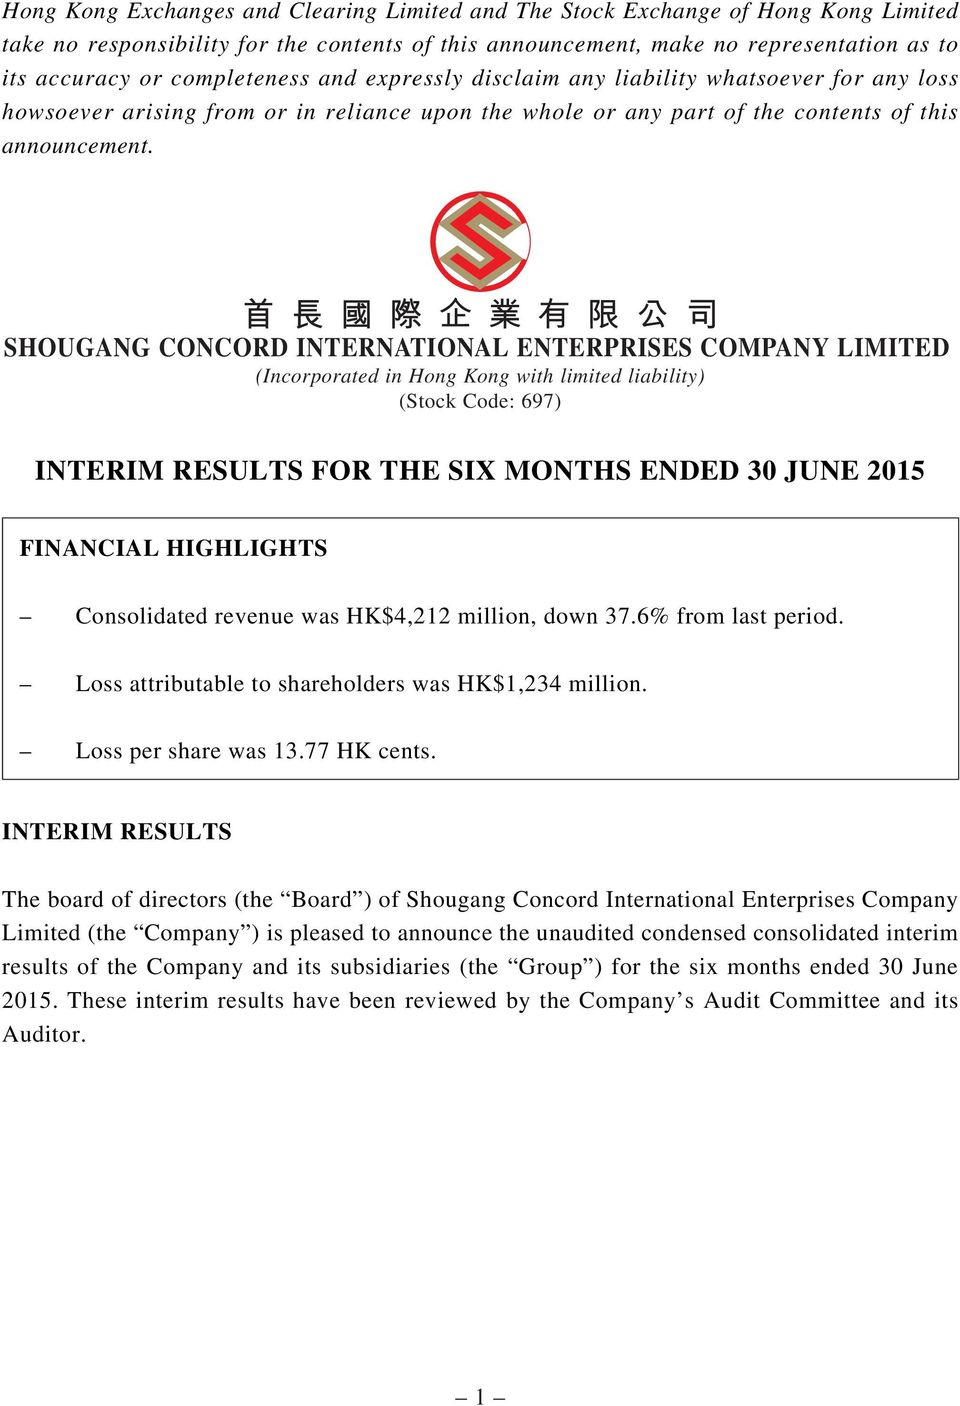 SHOUGANG CONCORD INTERNATIONAL ENTERPRISES COMPANY LIMITED (Incorporated in Hong Kong with limited liability) (Stock Code: 697) INTERIM RESULTS FOR THE SIX MONTHS ENDED 30 JUNE 2015 FINANCIAL